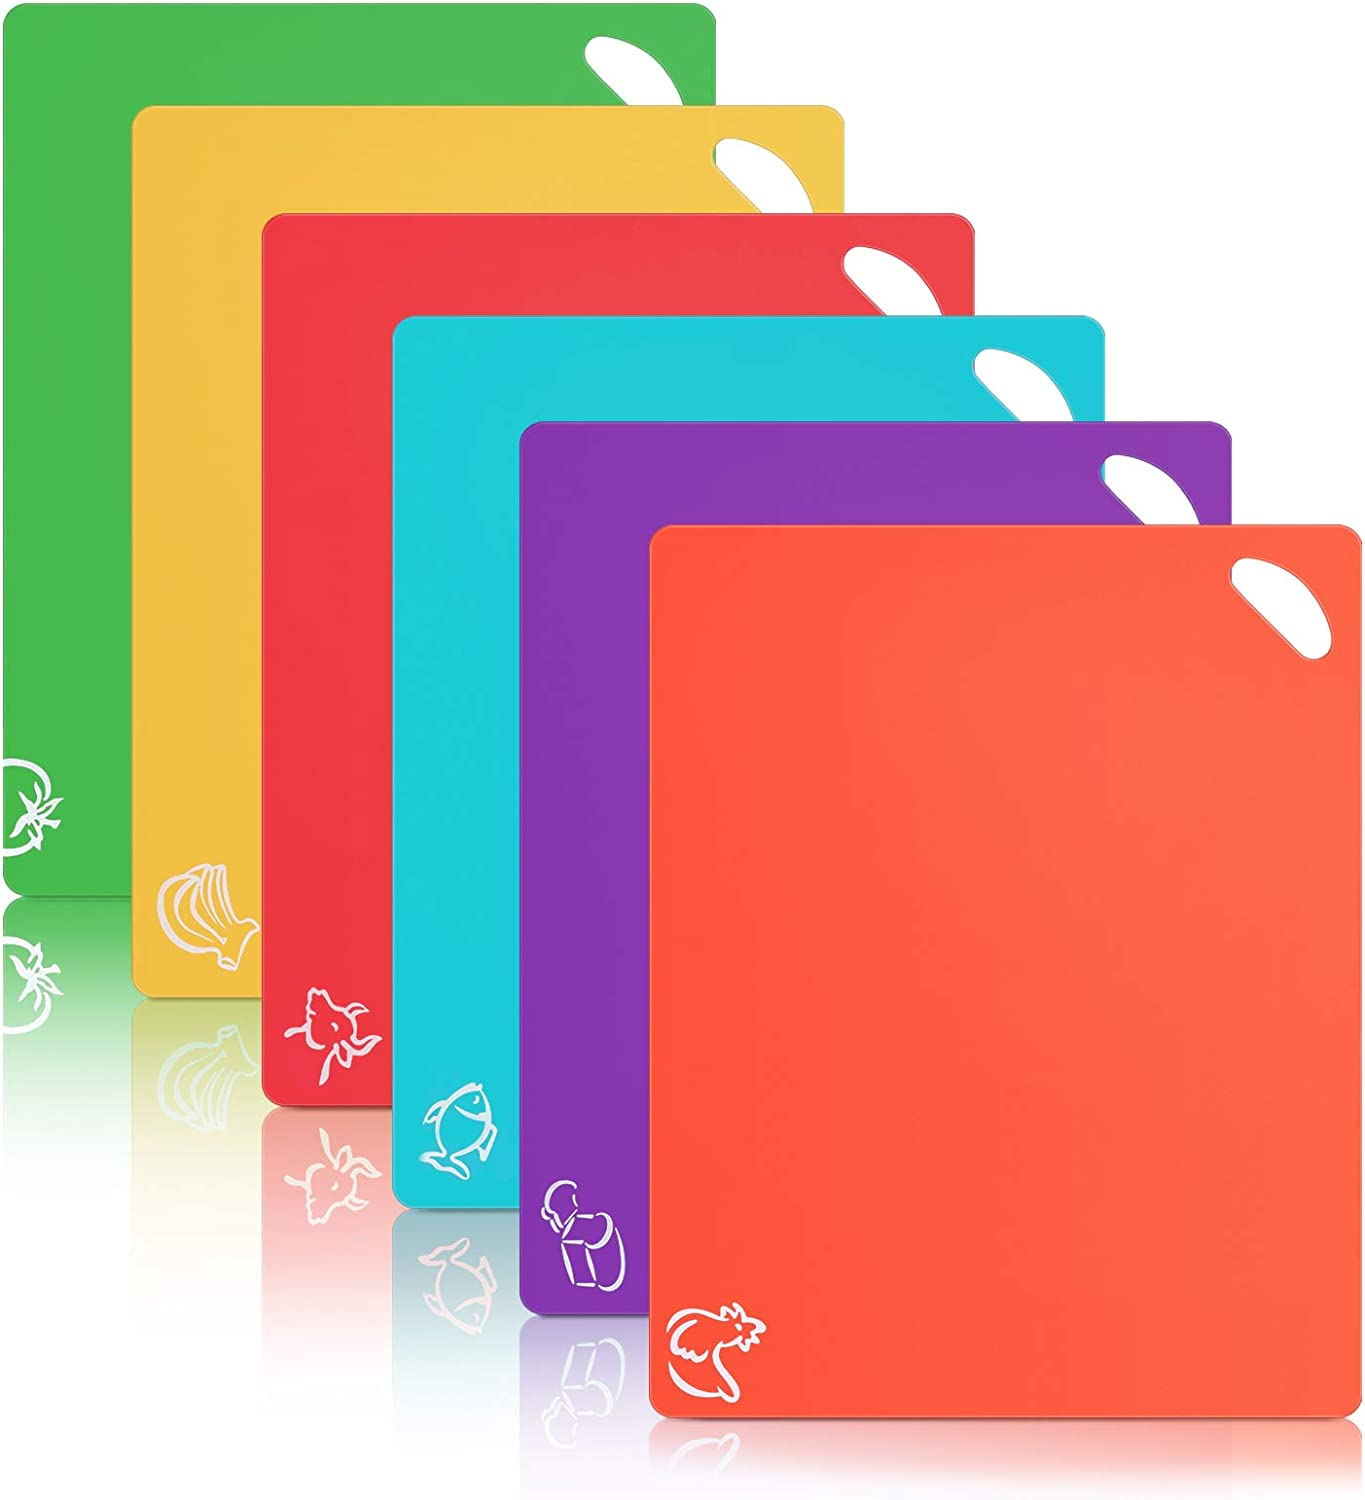 Alliebe 6 Pack Flexible Plastic Cutting Board Mats Colored Mats With Food Icons BPA-Free Non-Porous Gripped Back and Dishwasher Safe